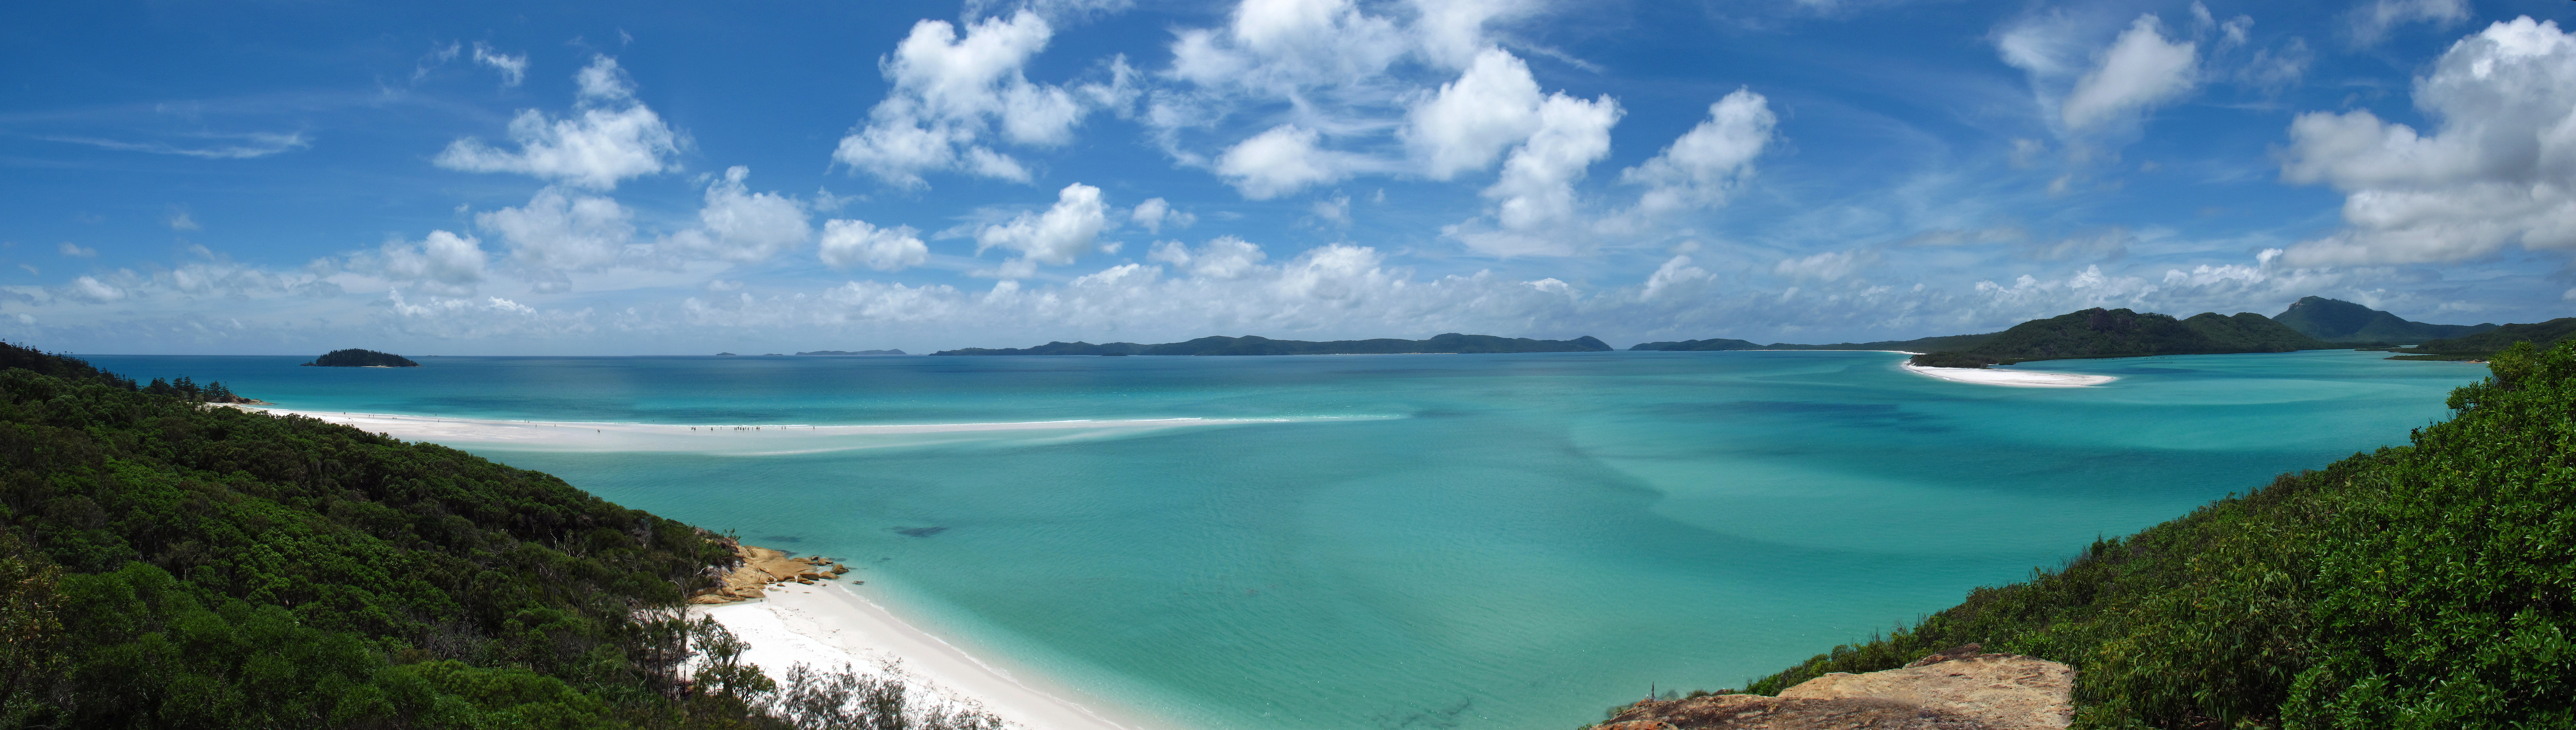 an overview of the australian islands whitsundays Whitsunday islands national park is a group of continental islands lying off the queensland coast 25km east of airlie beach.